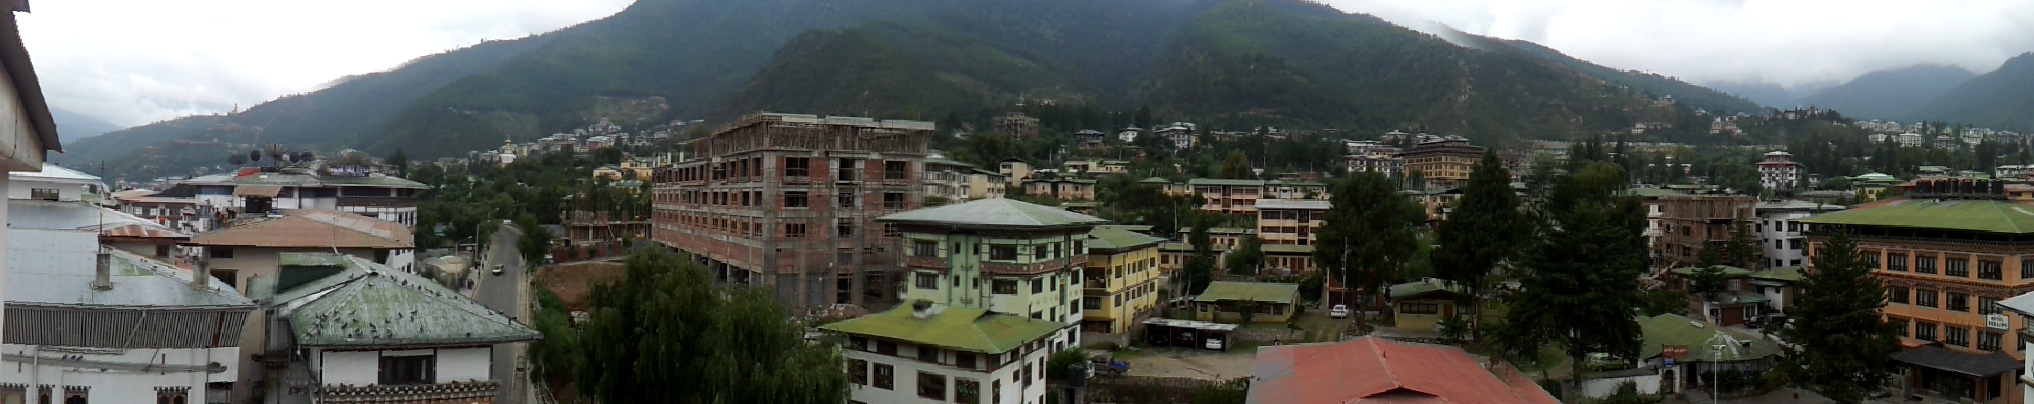 Southern street view of Thimphu